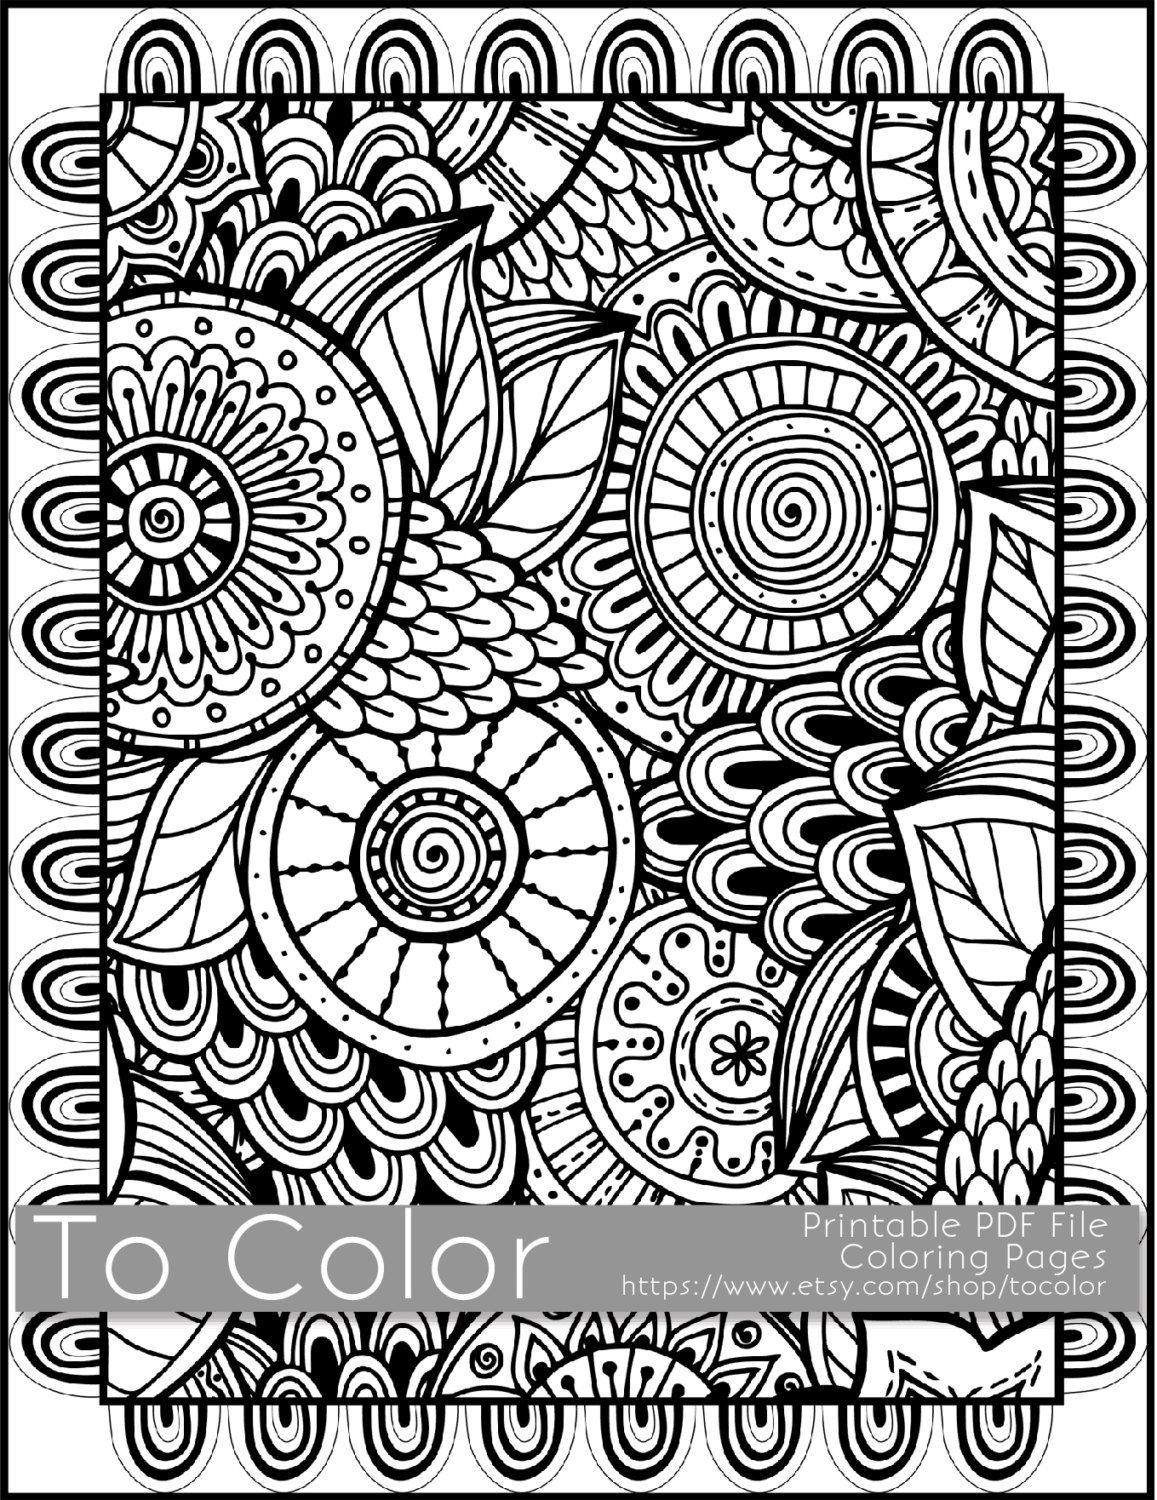 Pinkate Pullen On Free Coloring Pages For Coloring Fans - Free Printable Doodle Patterns